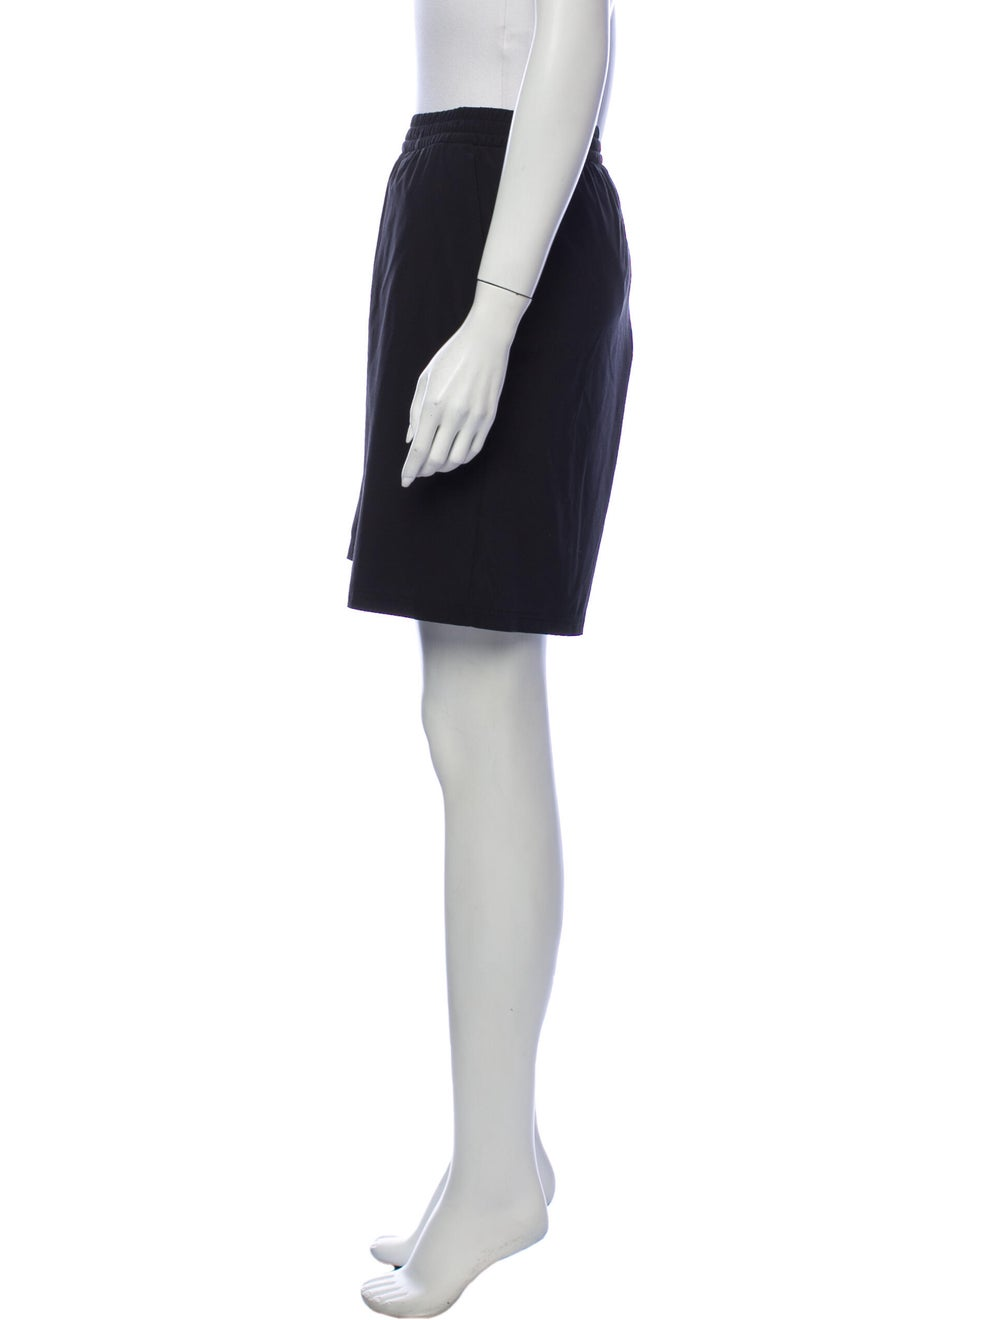 Outdoor Voices Knee-Length Shorts Black - image 2